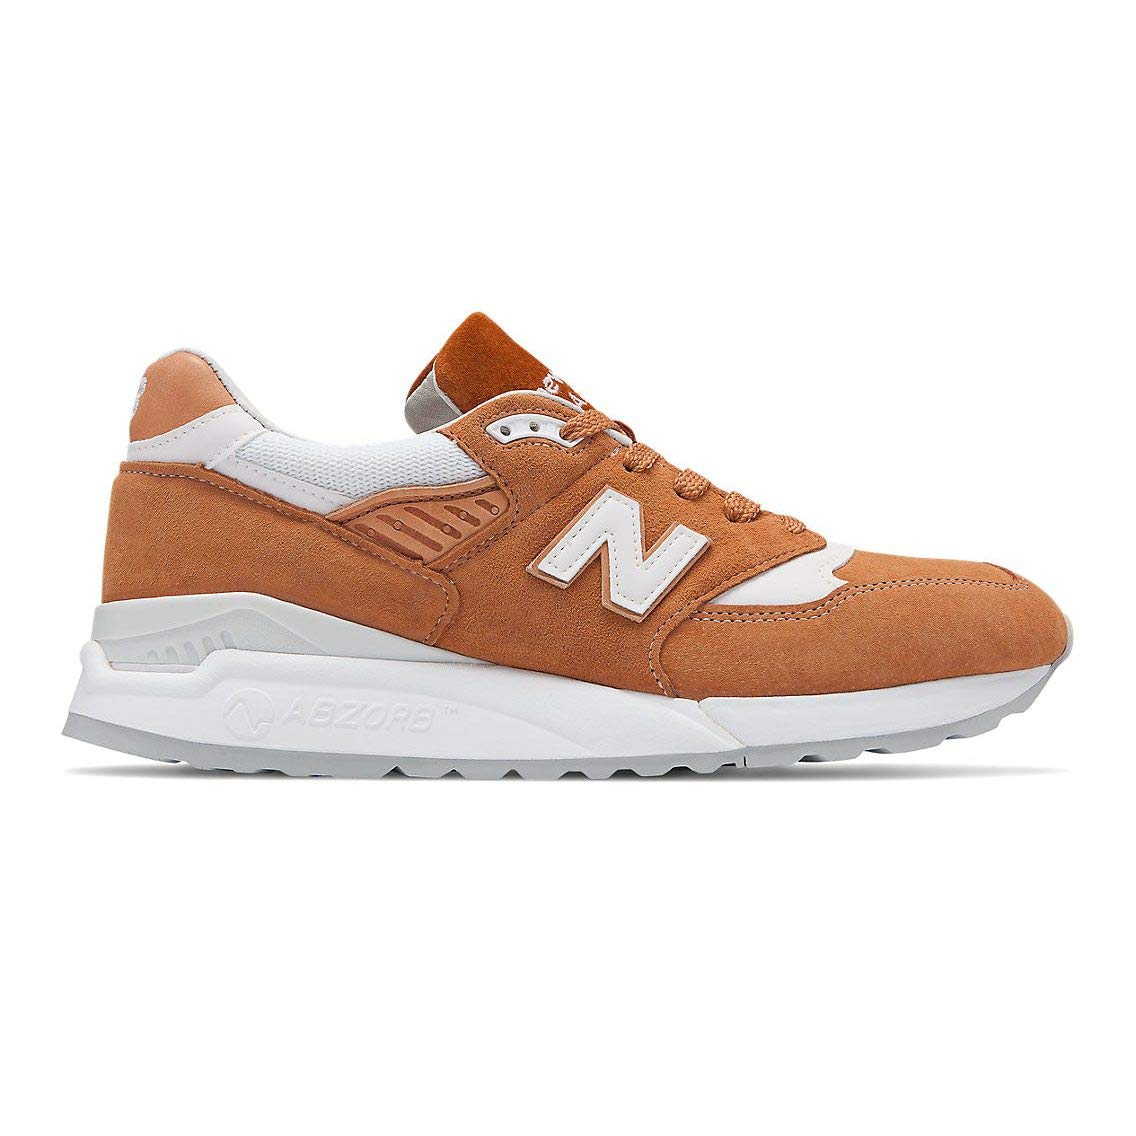 NewBalance M999 D Leather Synthetic - jta rot, Größe 8.5(42)